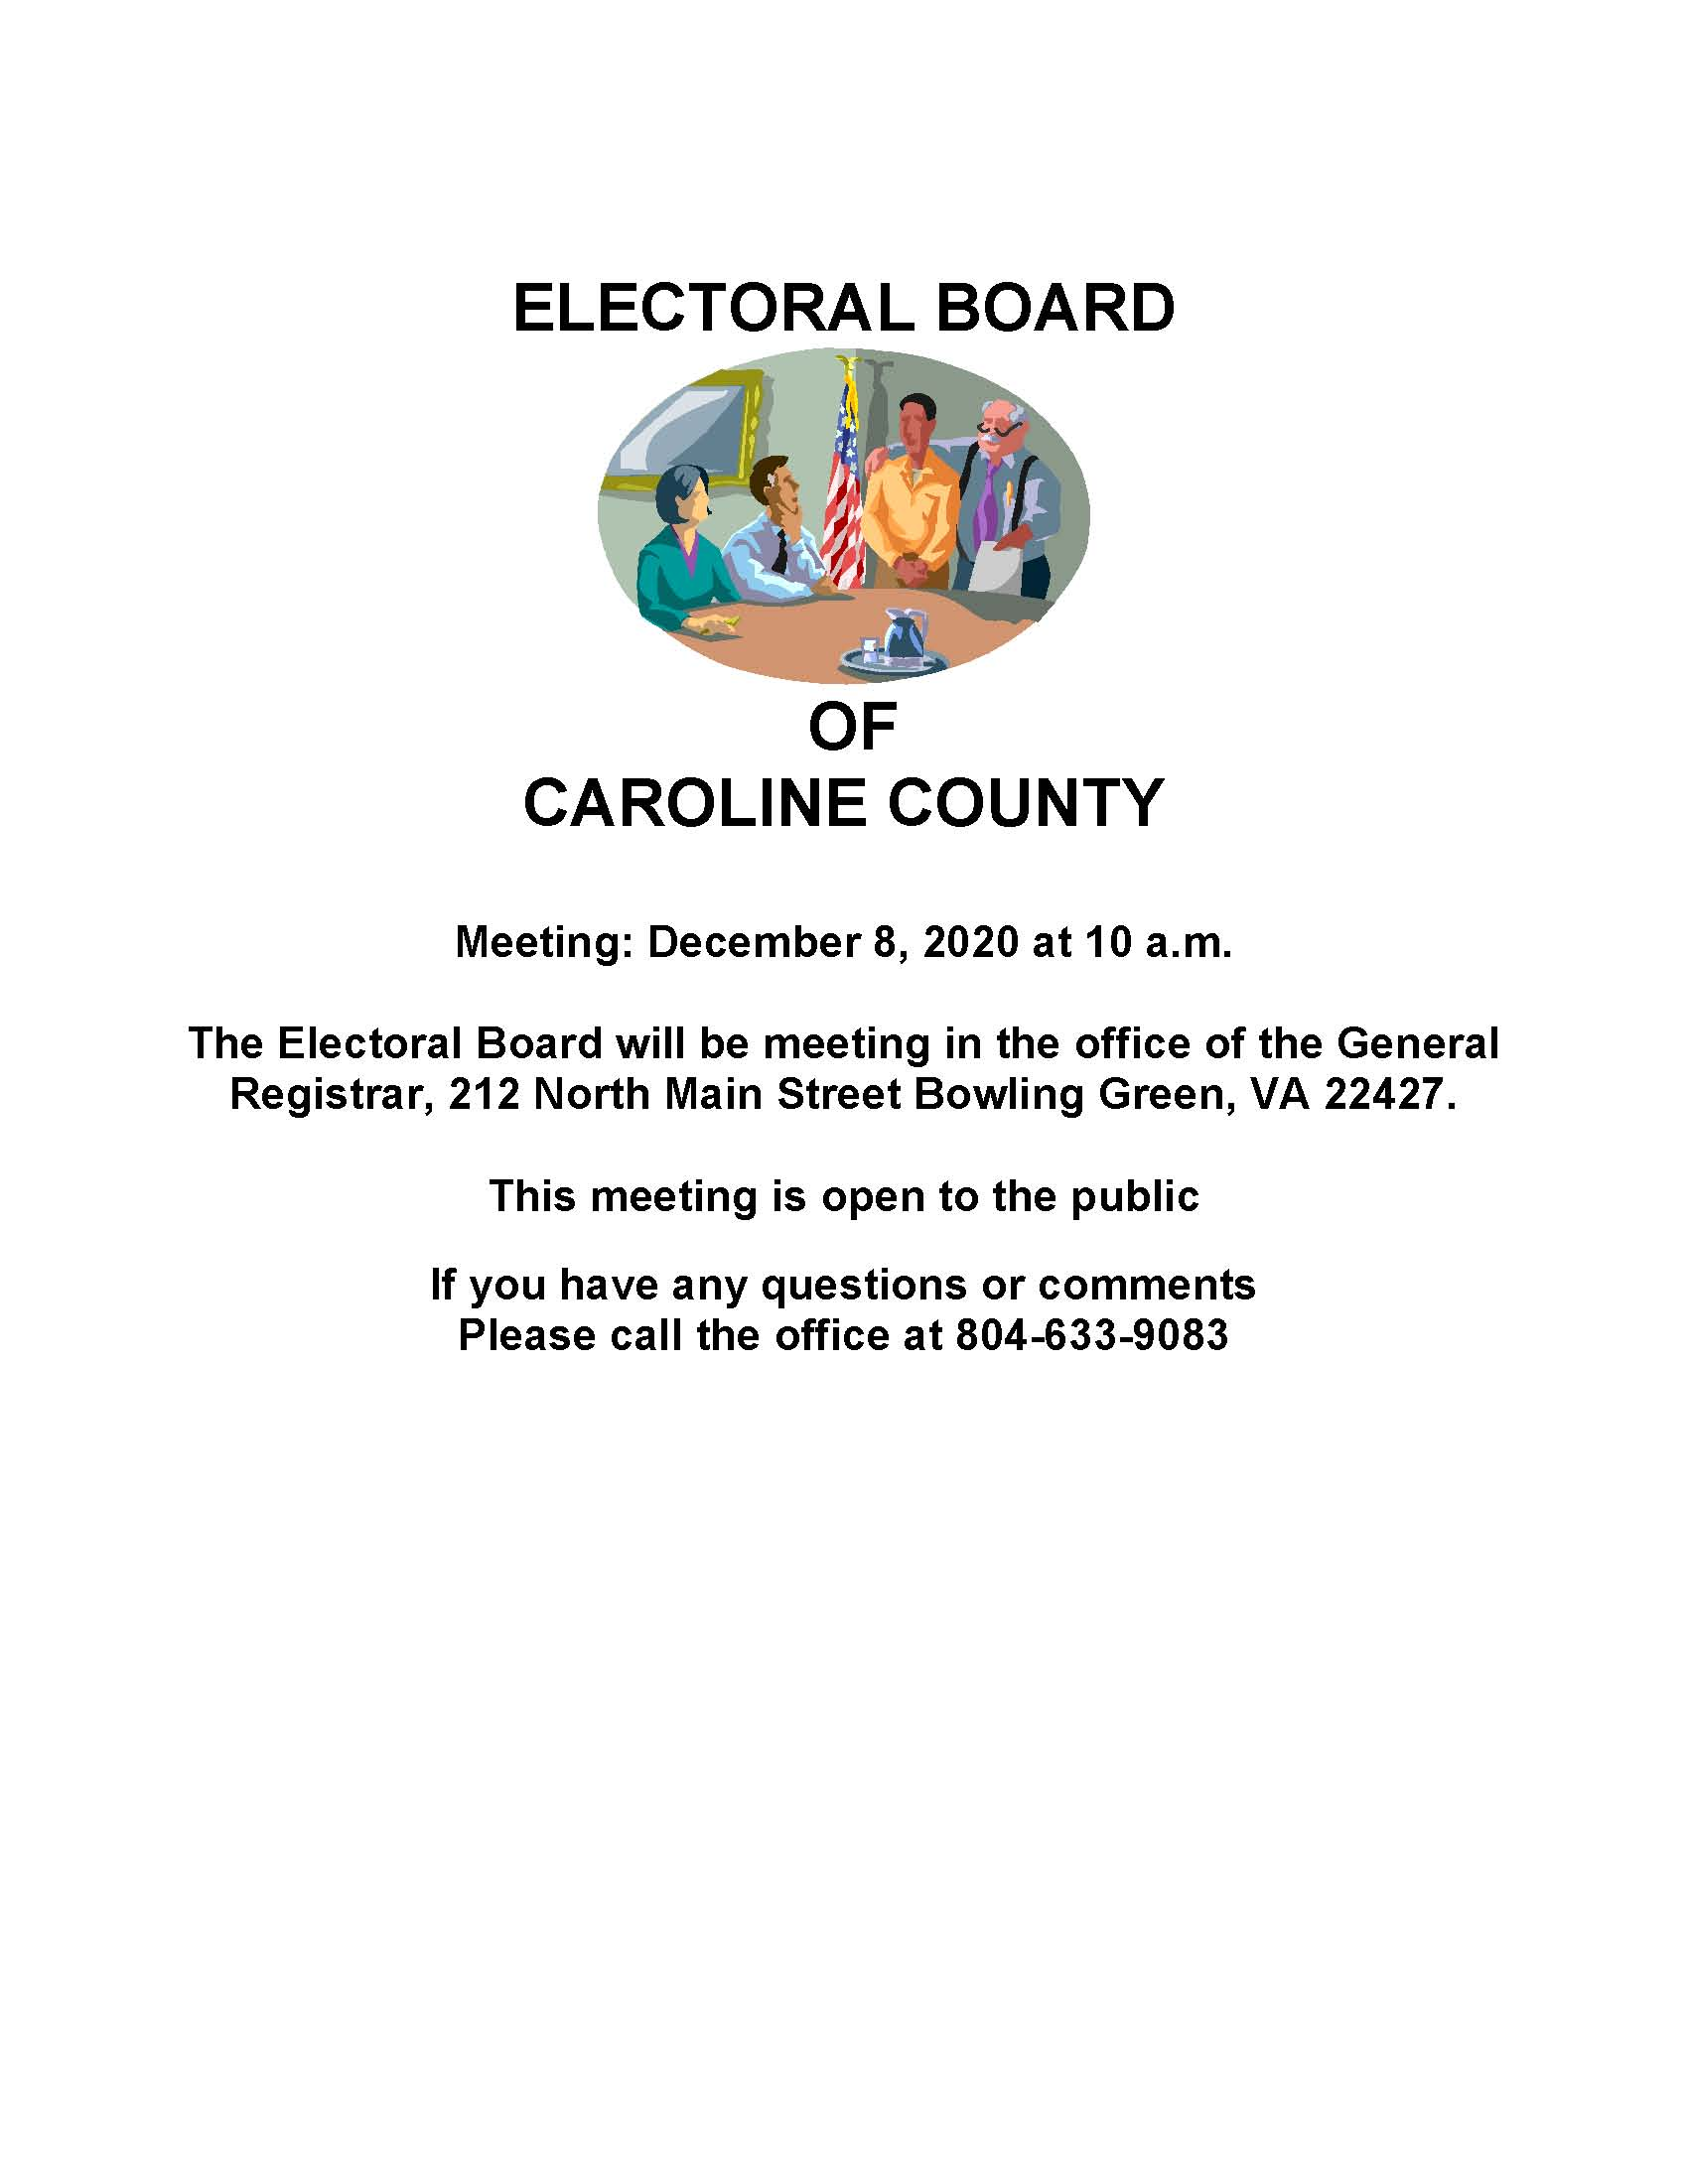 December 8, 2020 Electoral Board Meeting